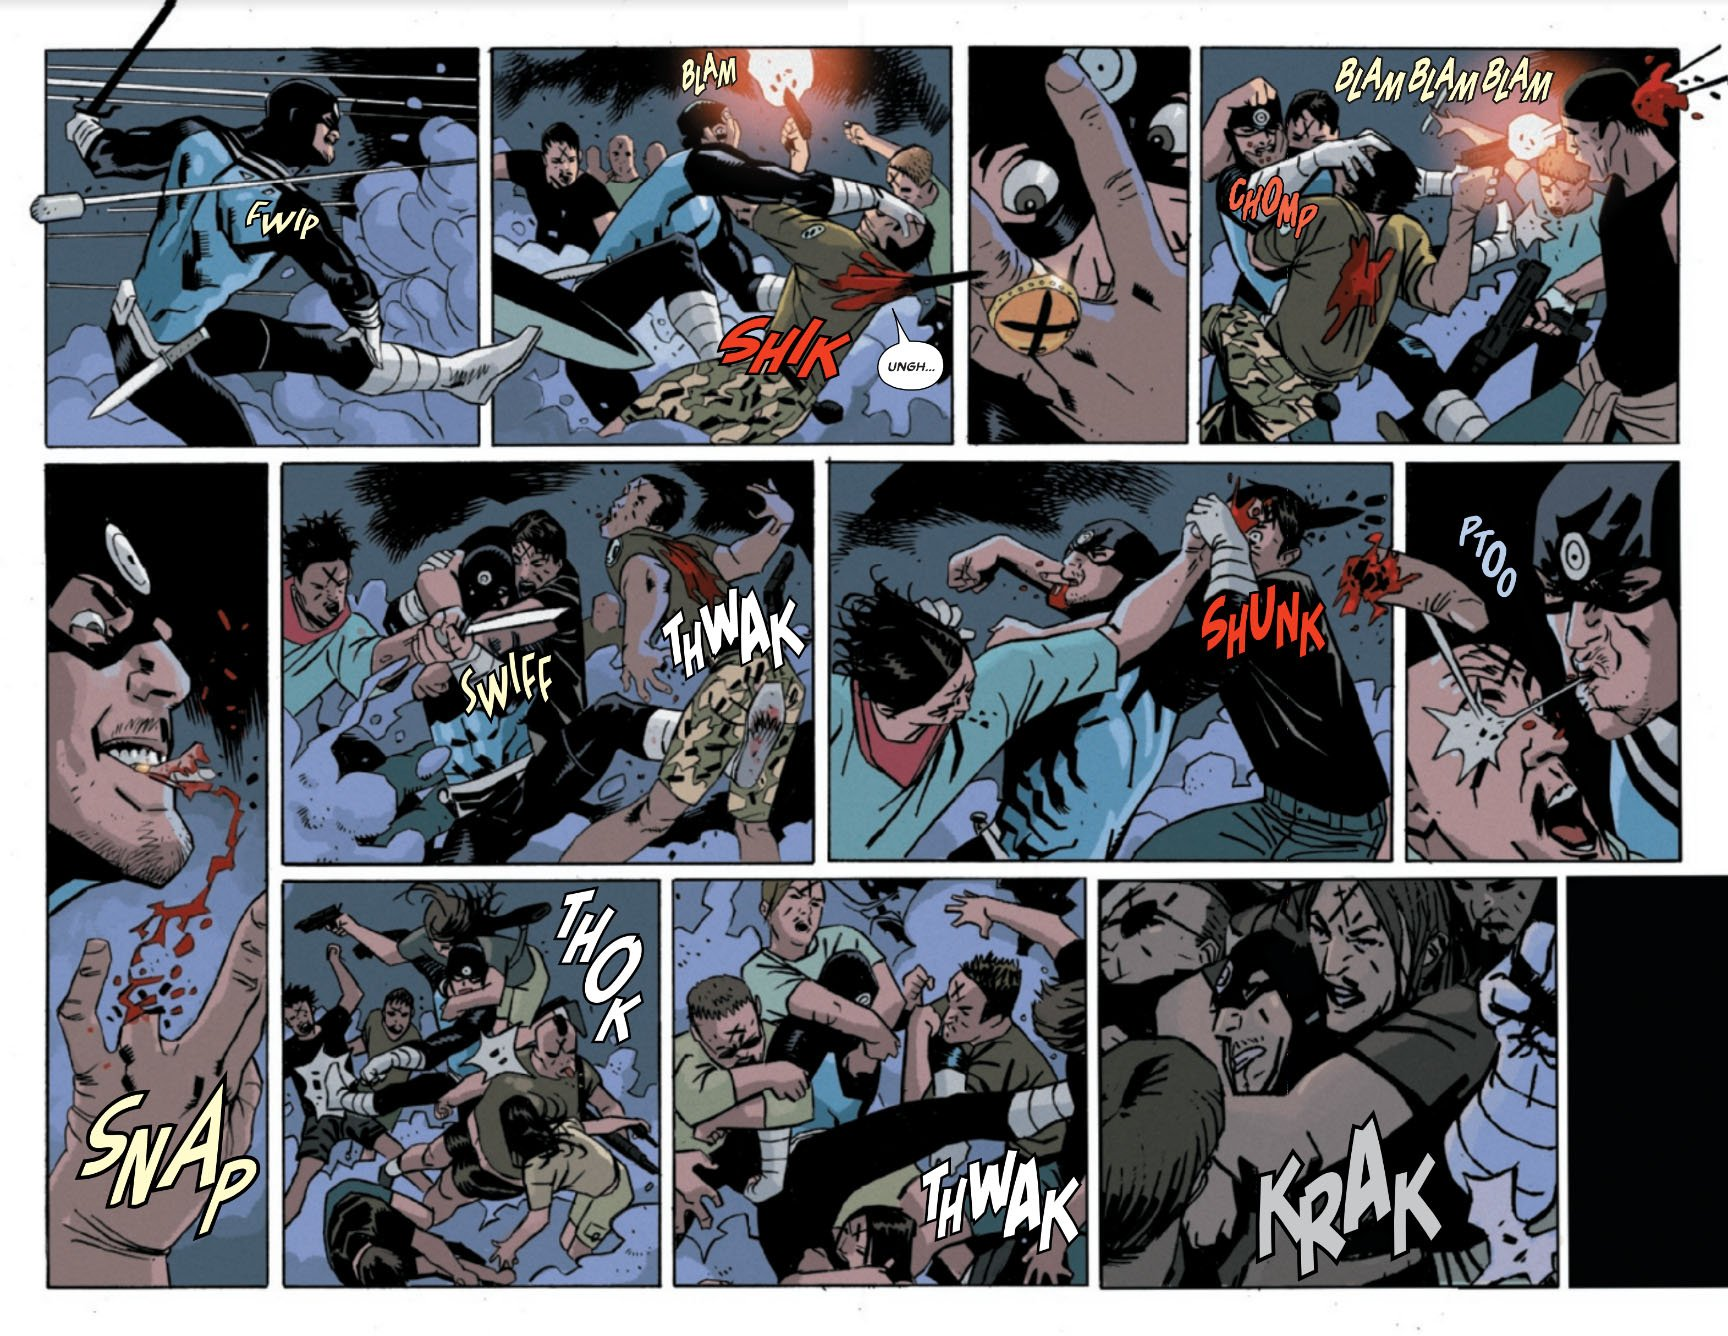 Bullseye 3 pages 2 and 3